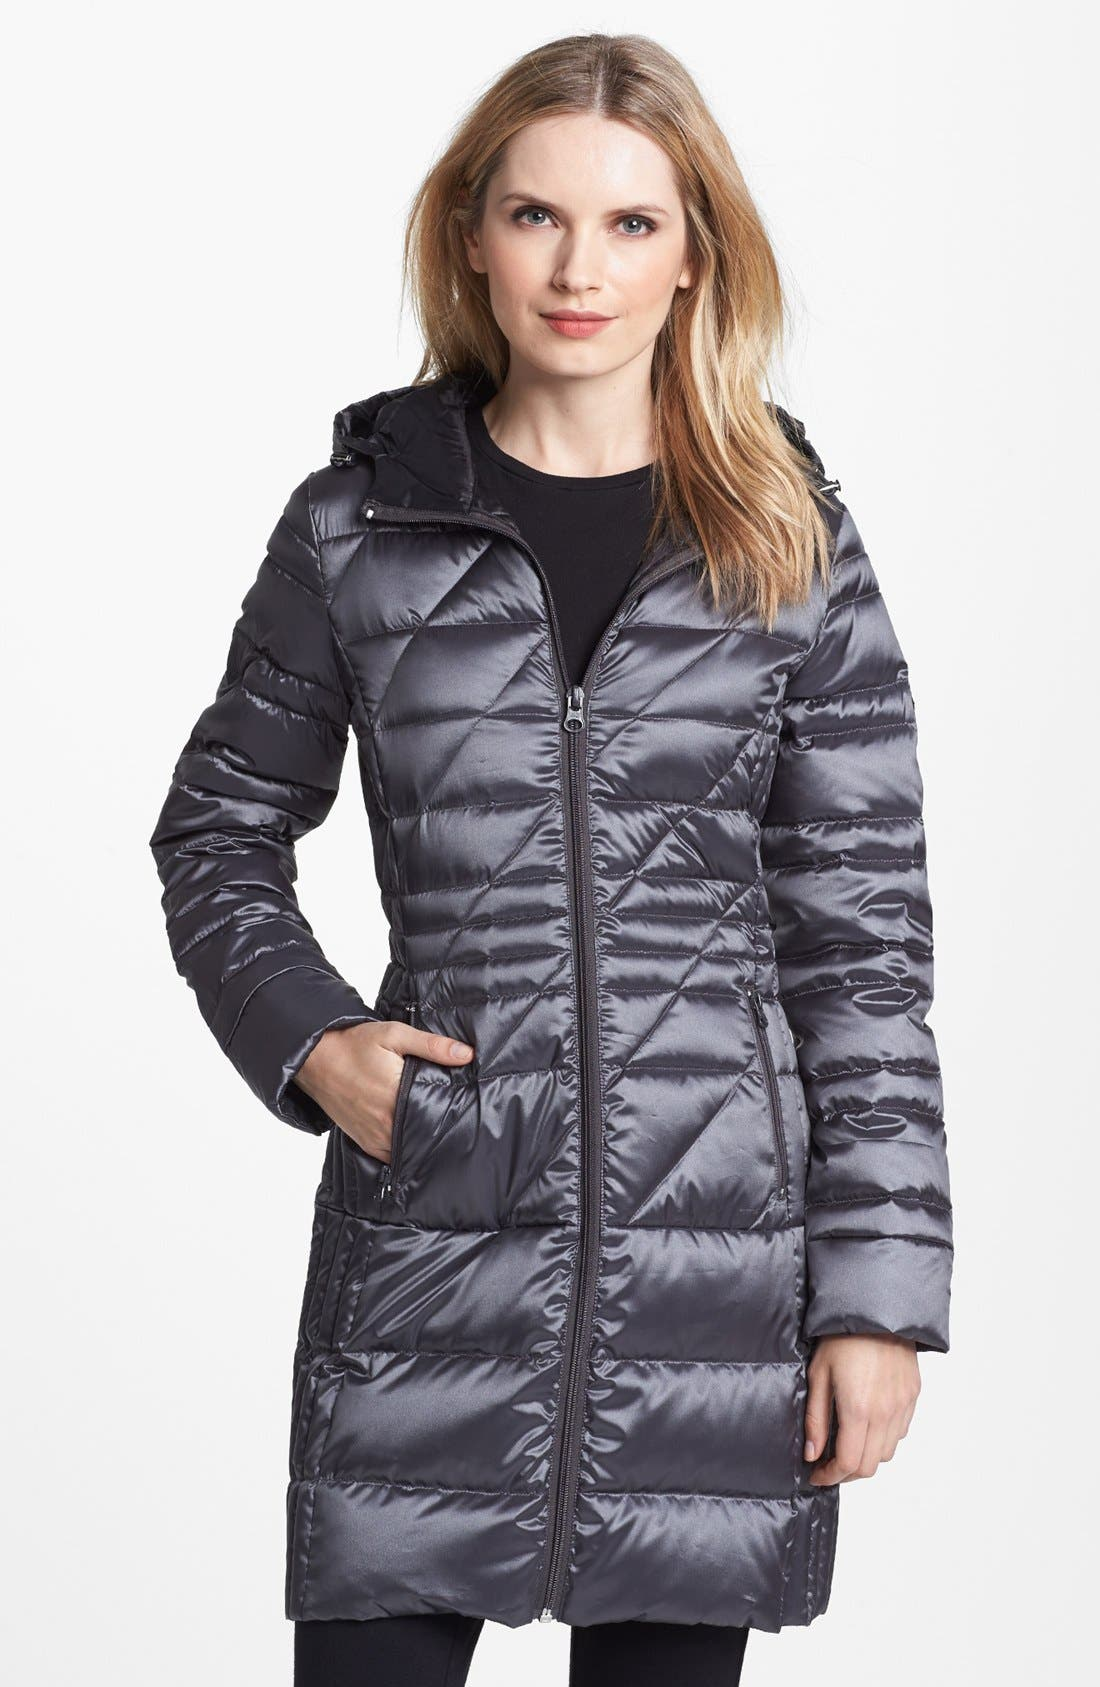 Main Image - Bernardo Hooded Packable Goose Down Walking Coat (Regular & Petite) (Nordstrom Exclusive)